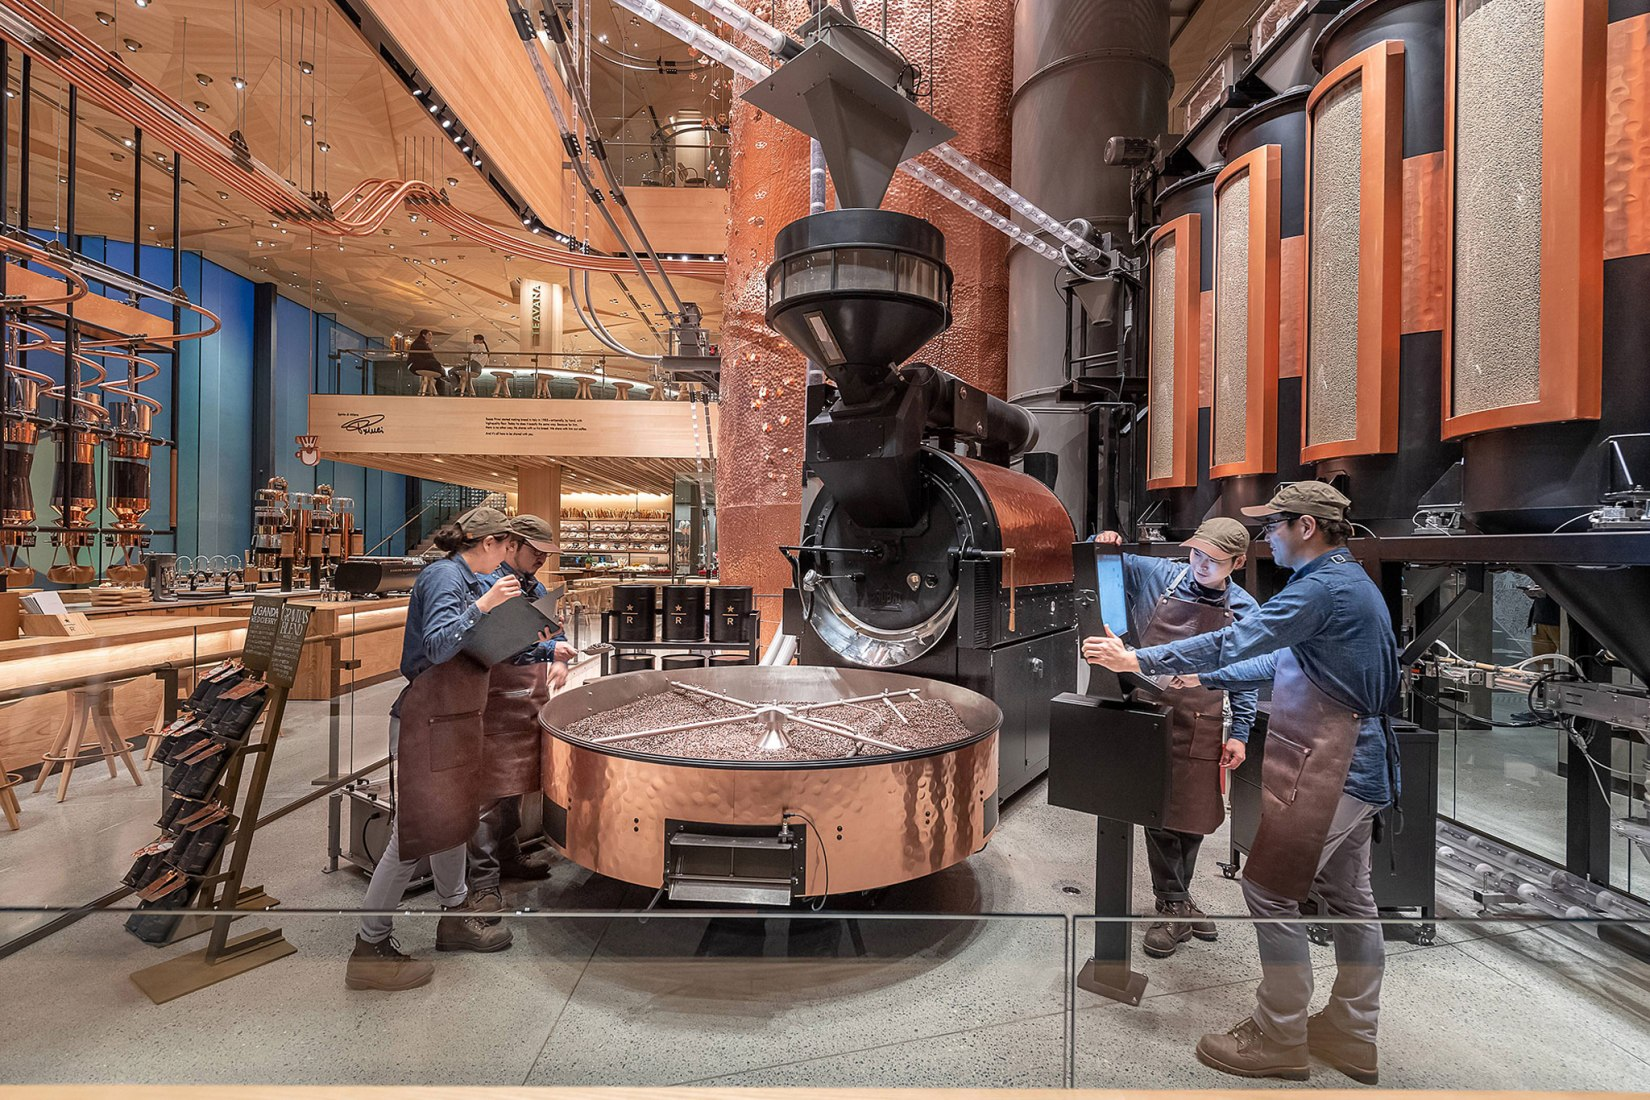 Starbucks Reserve Roastery in Tokyo. Image courtesy of Starbucks.